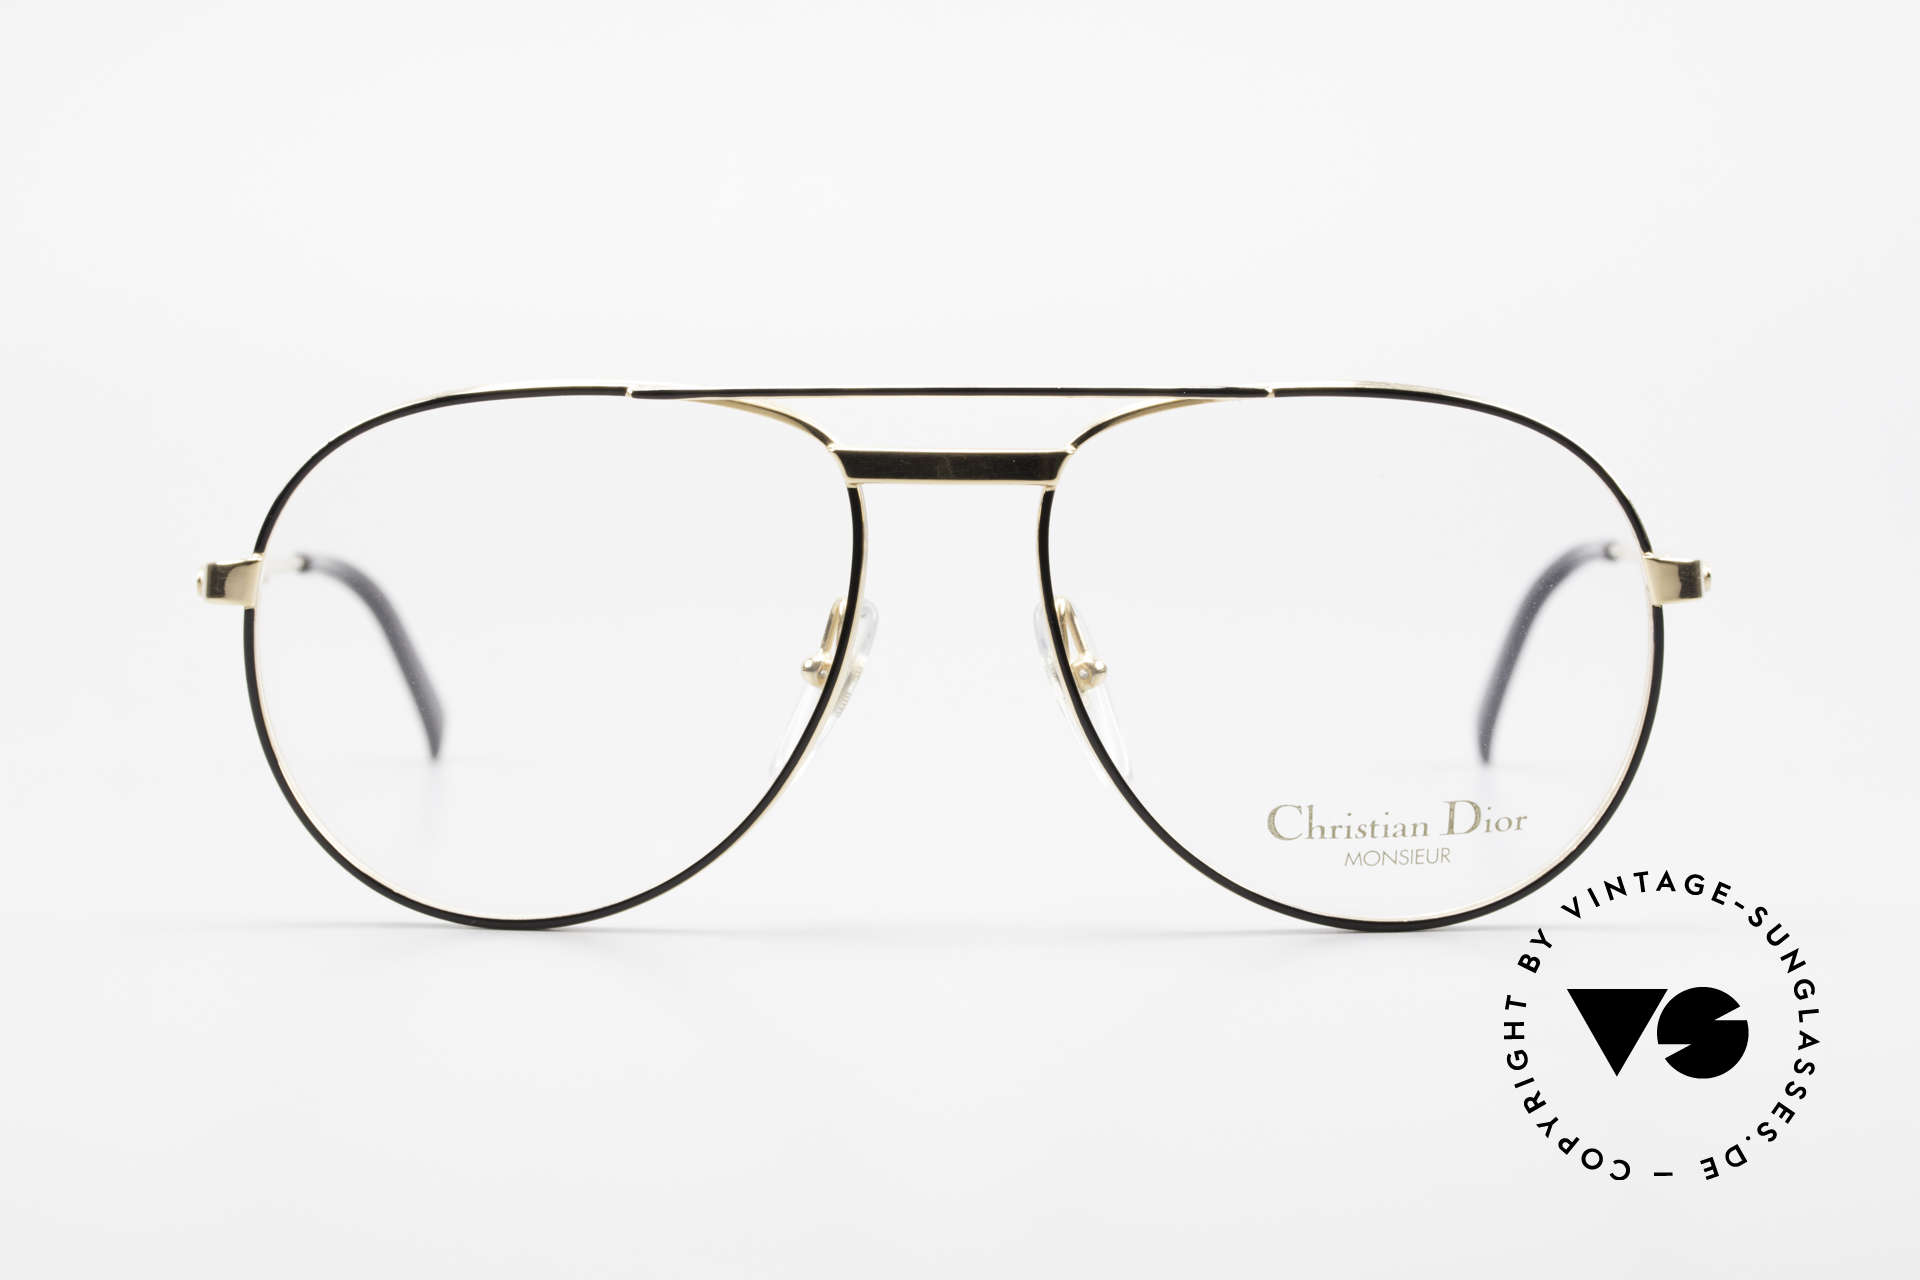 Christian Dior 2448 Gold-Plated Dior Monsieur Frame, precious designer eyeglasses from 1989; true vintage!, Made for Men